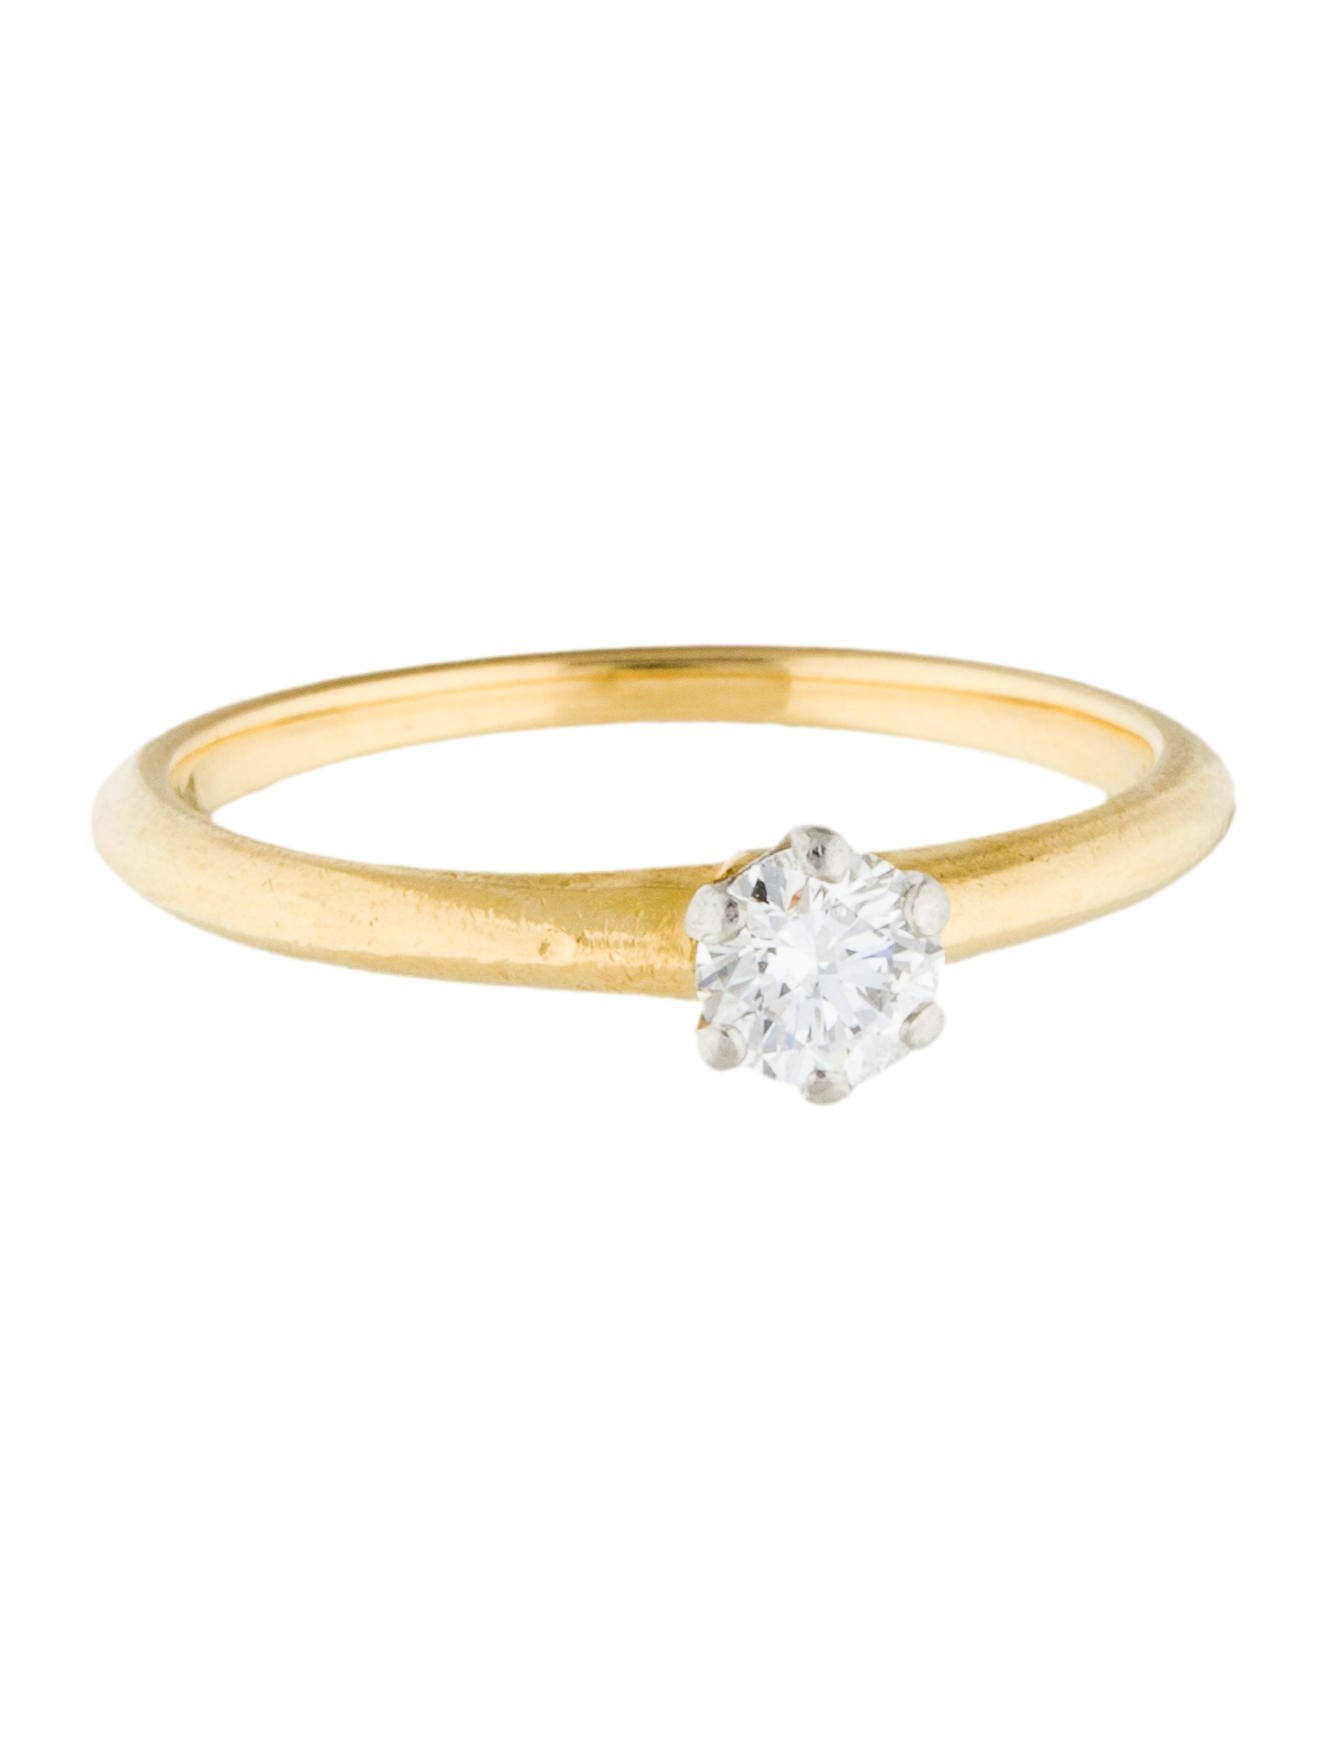 Tiffany co 18k diamond solitaire engagement ring for Wedding ring companies